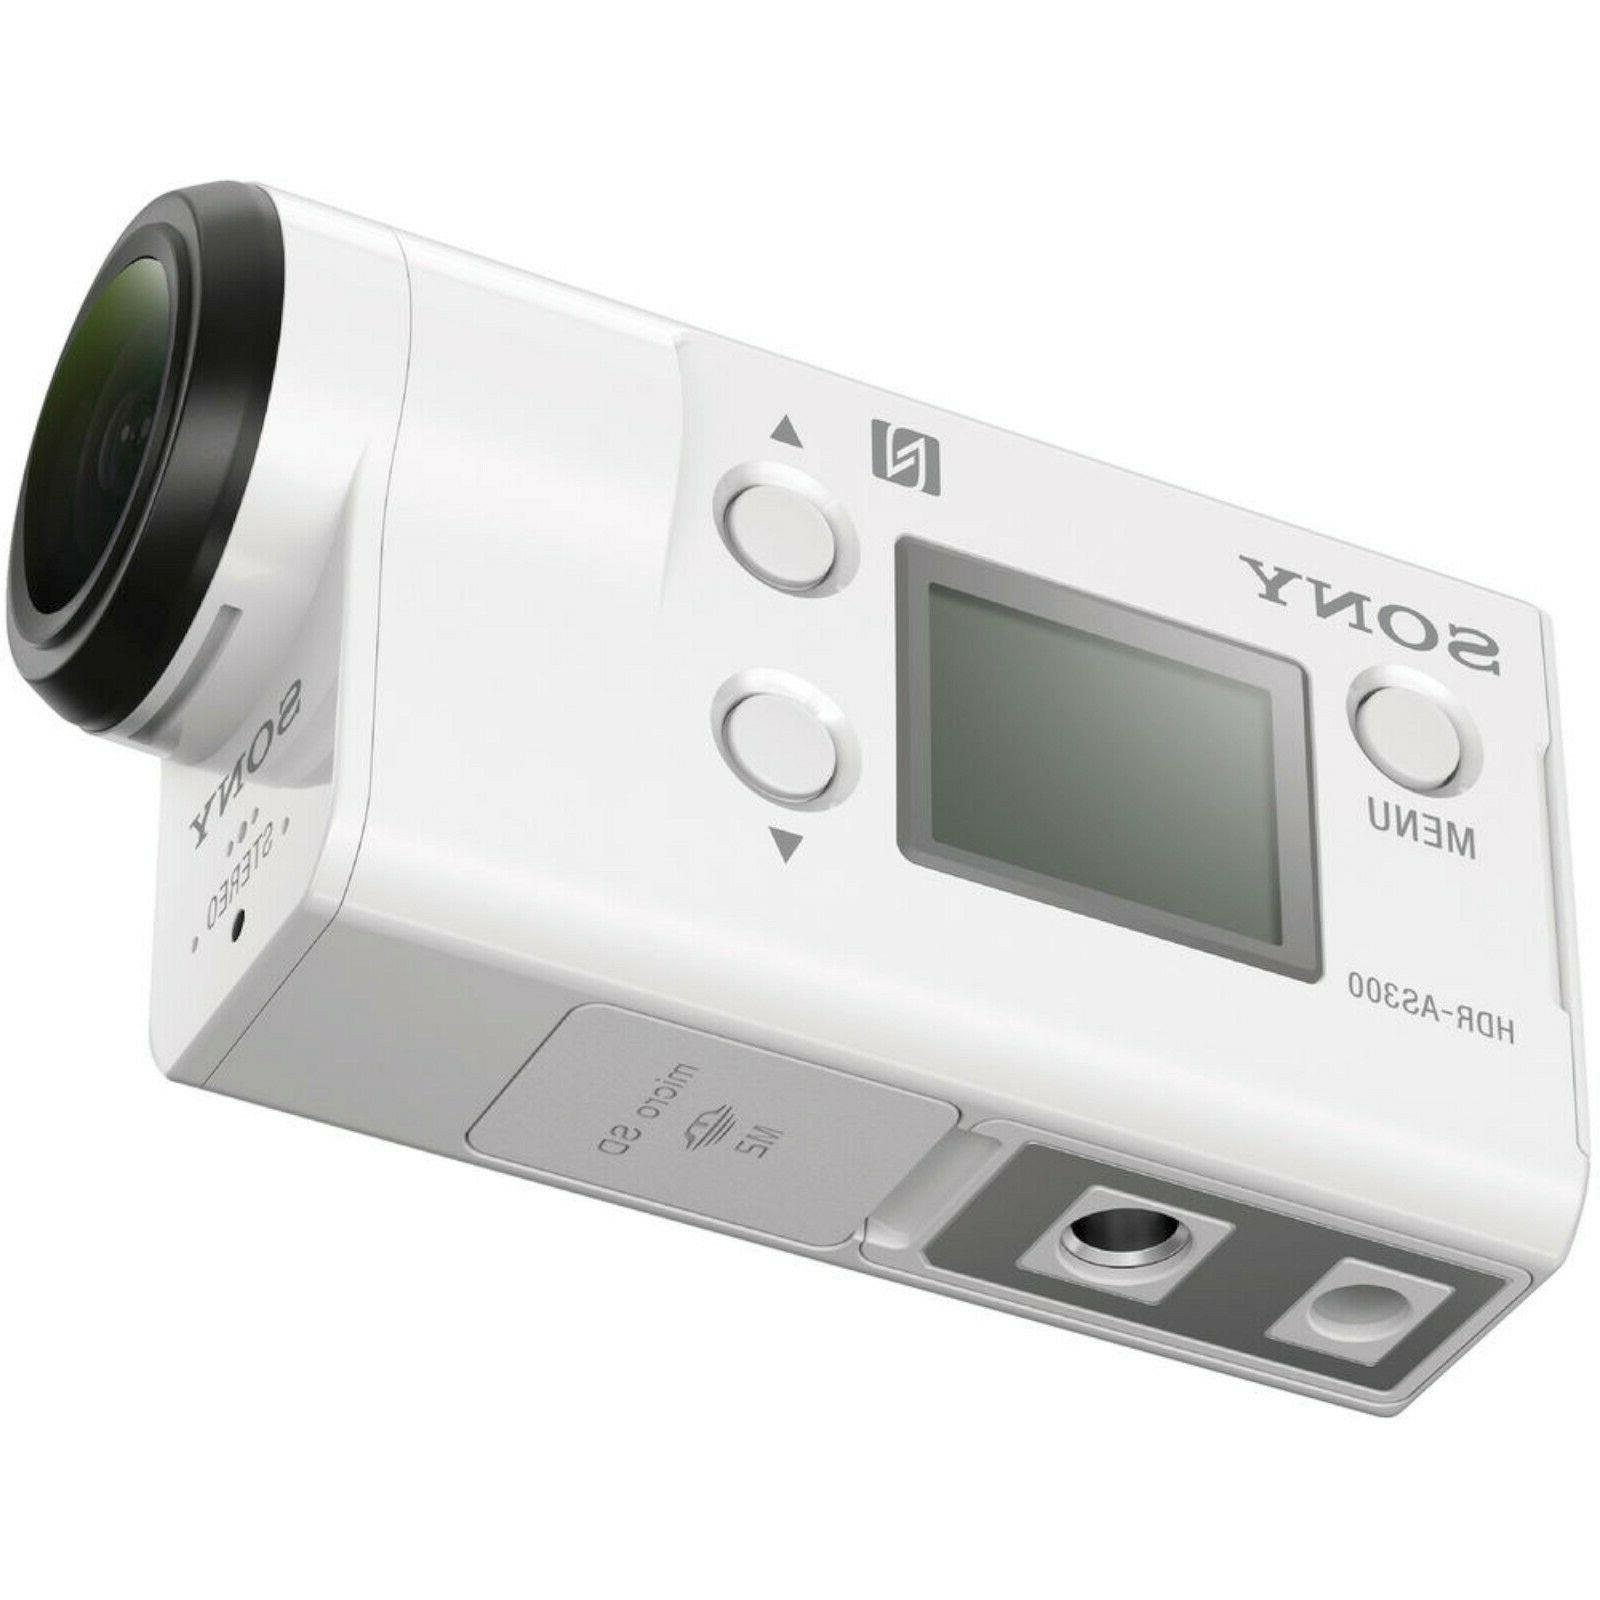 NEW Sony Action Cam HDR-AS300 Video Camera